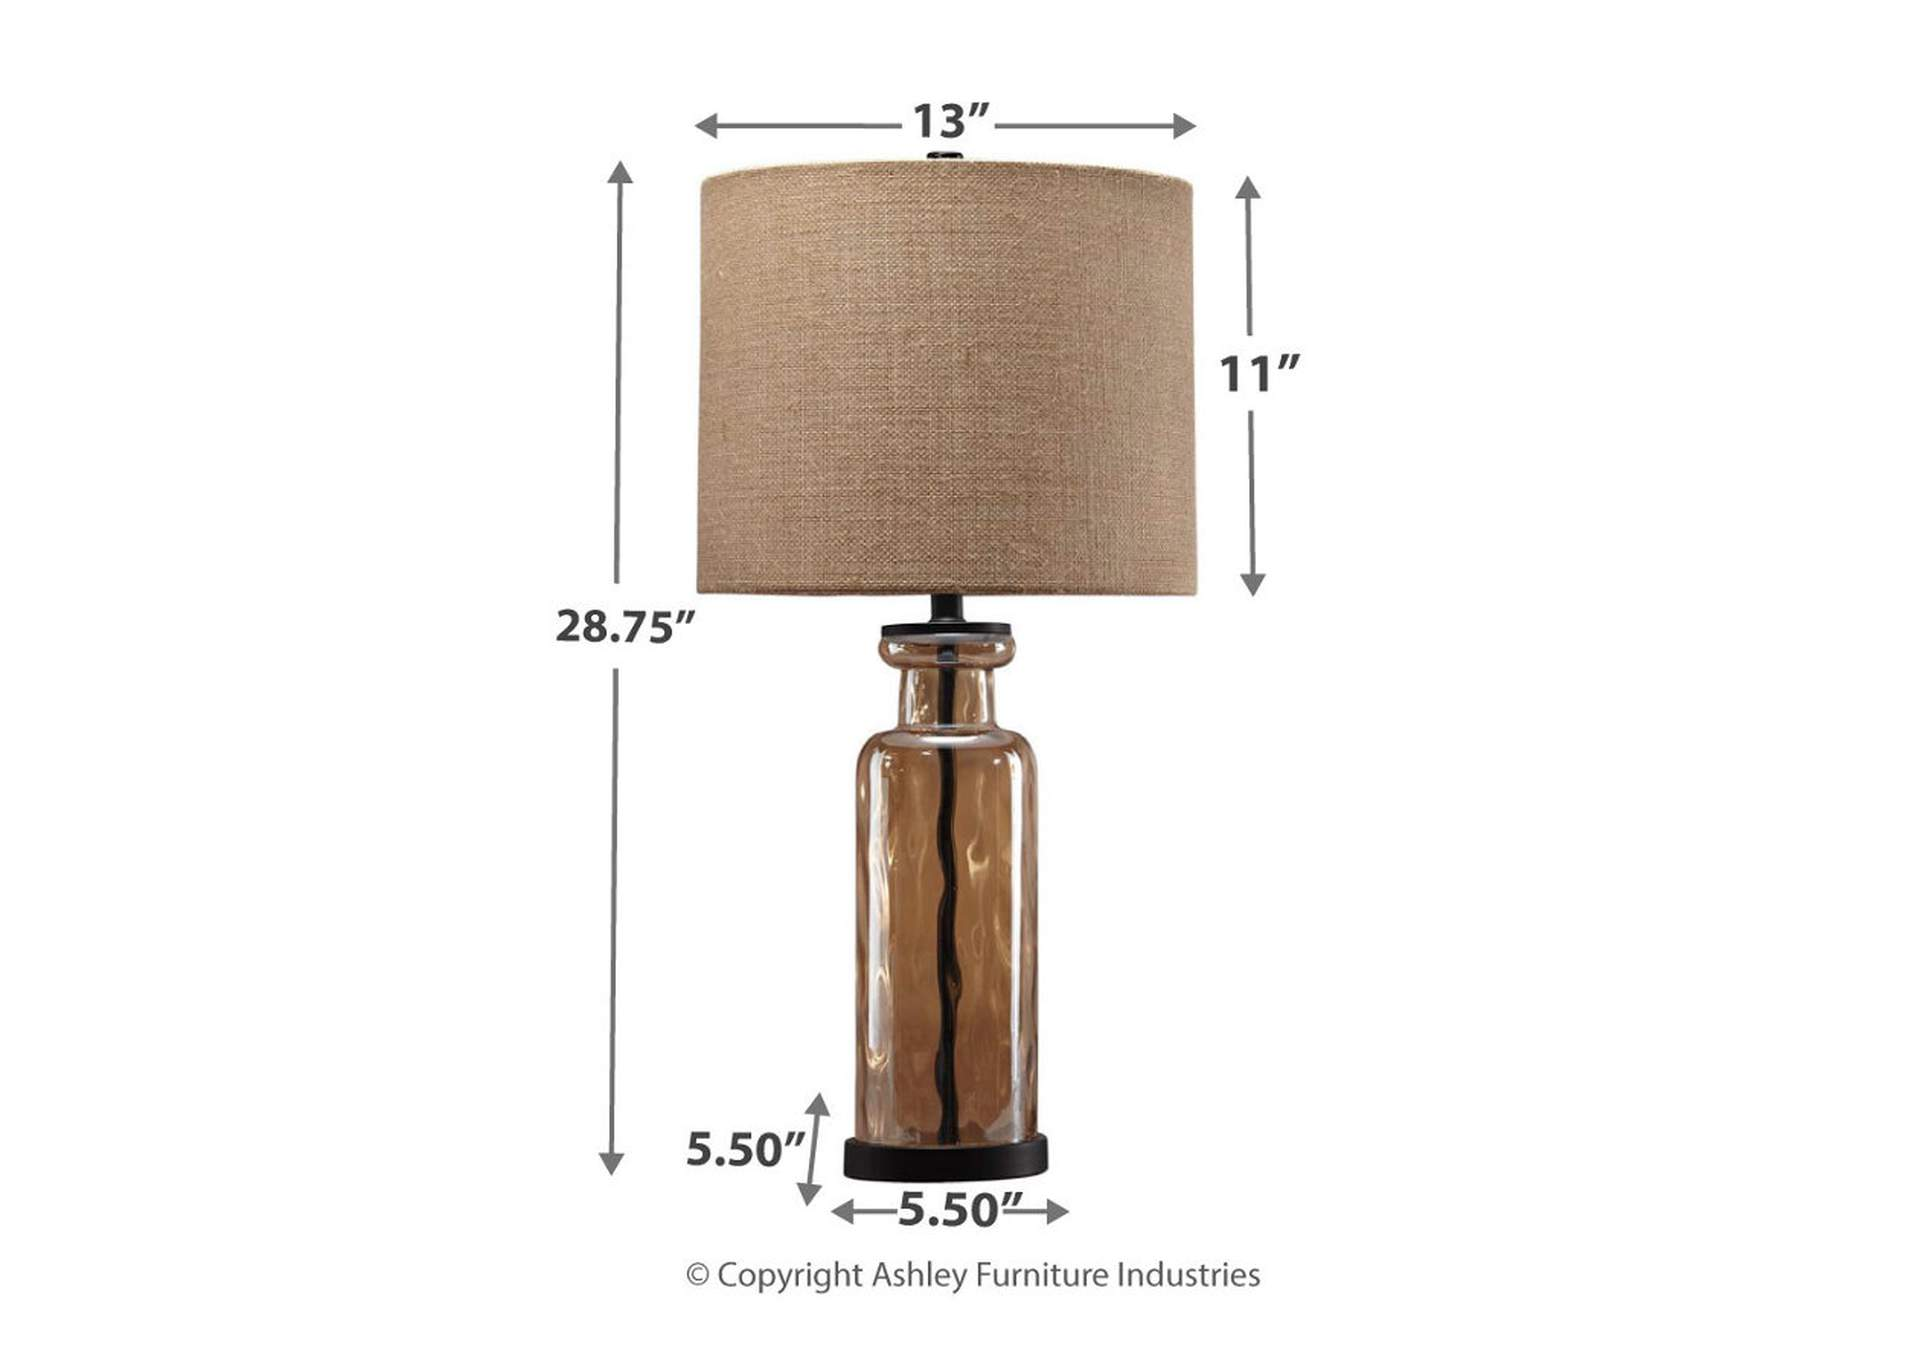 Laurentia Champagne Glass Table Lamp,Direct To Consumer Express